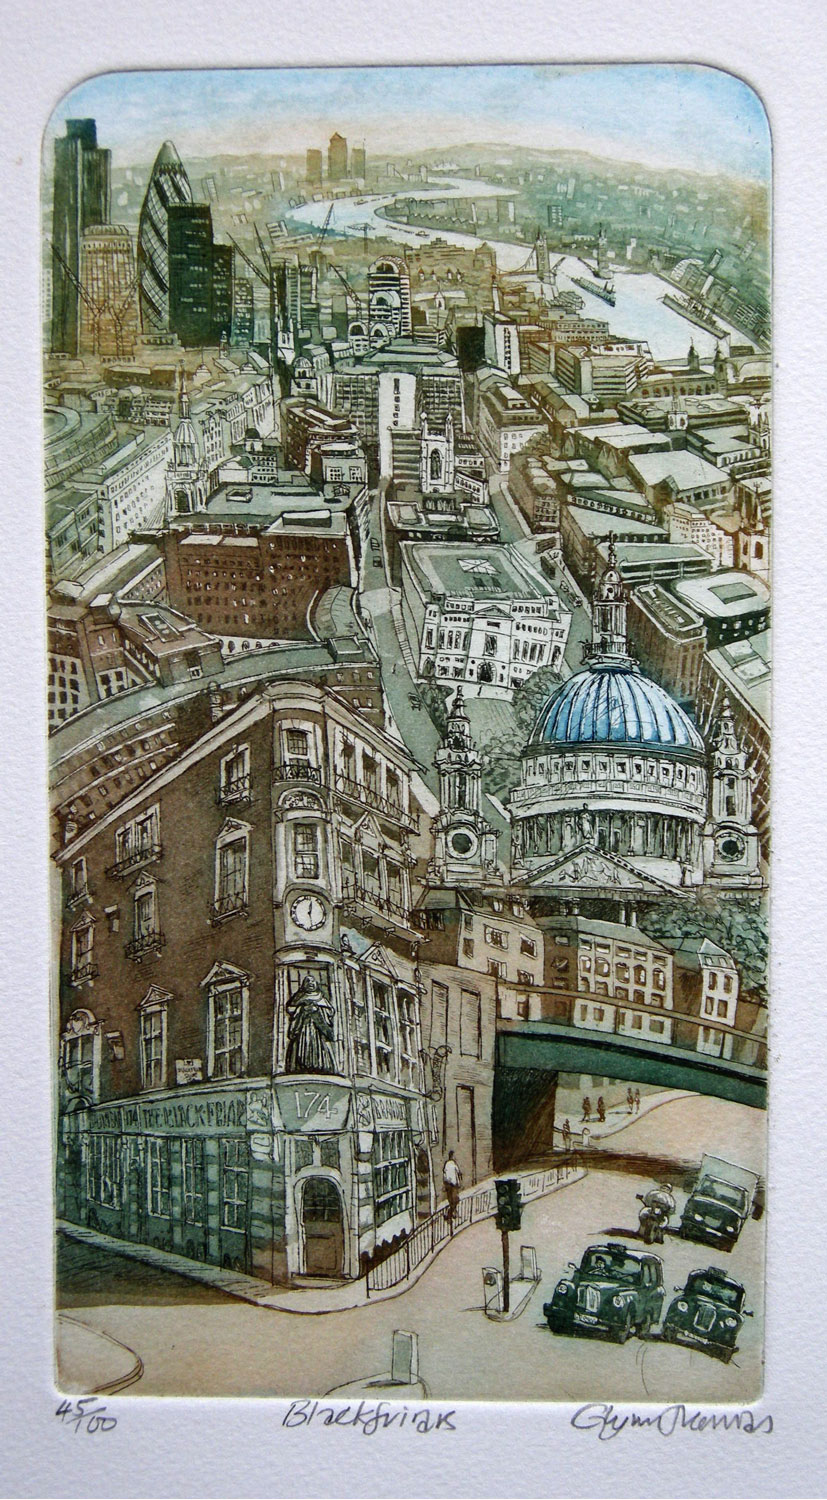 Blackfriars etching £100 (unframed)